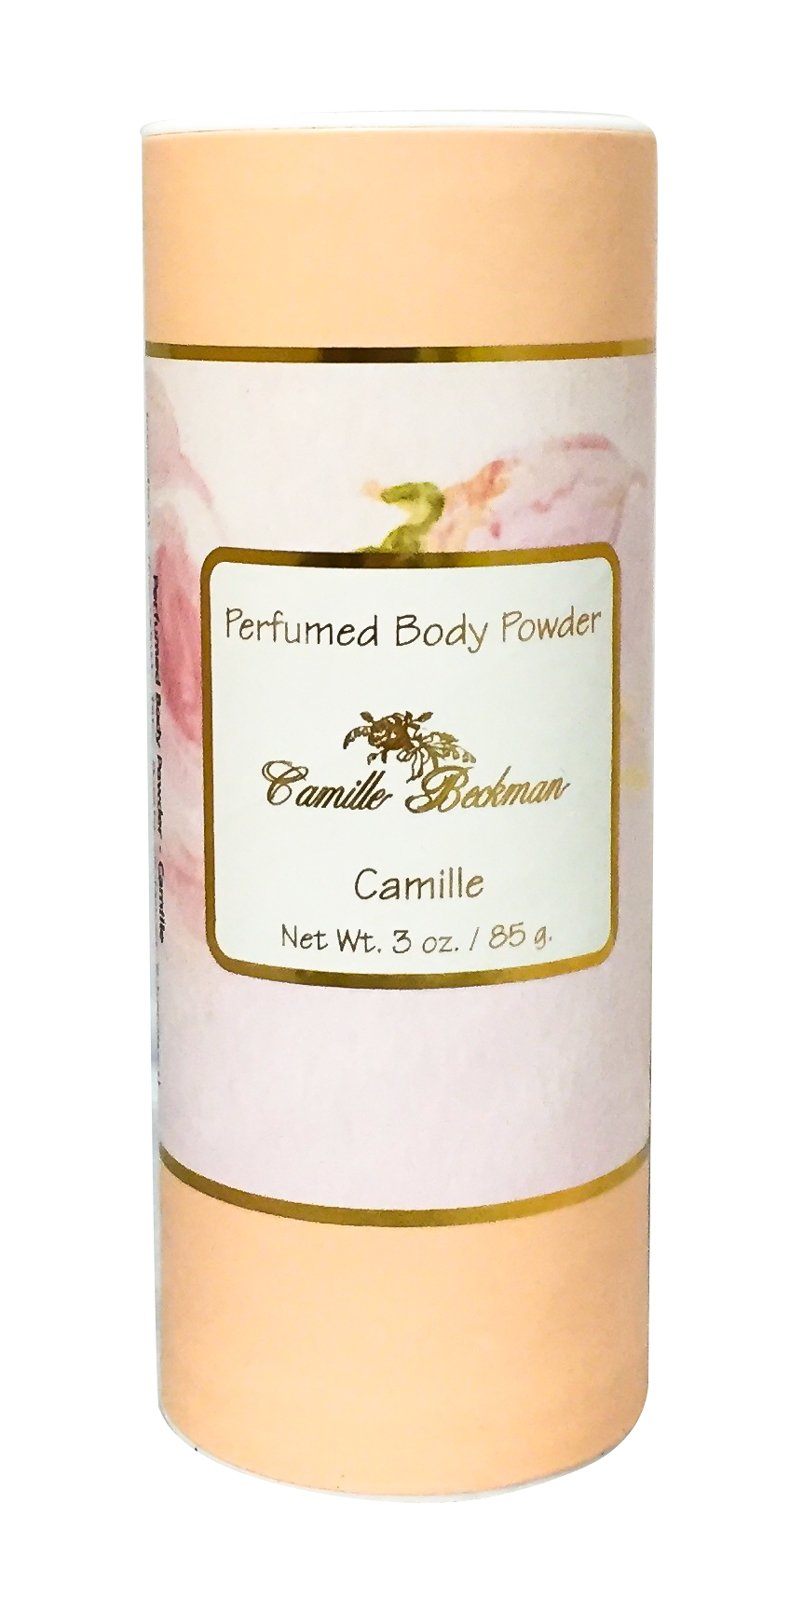 Camille Beckman Perfumed Body Powder, Camille, 3 Ounce